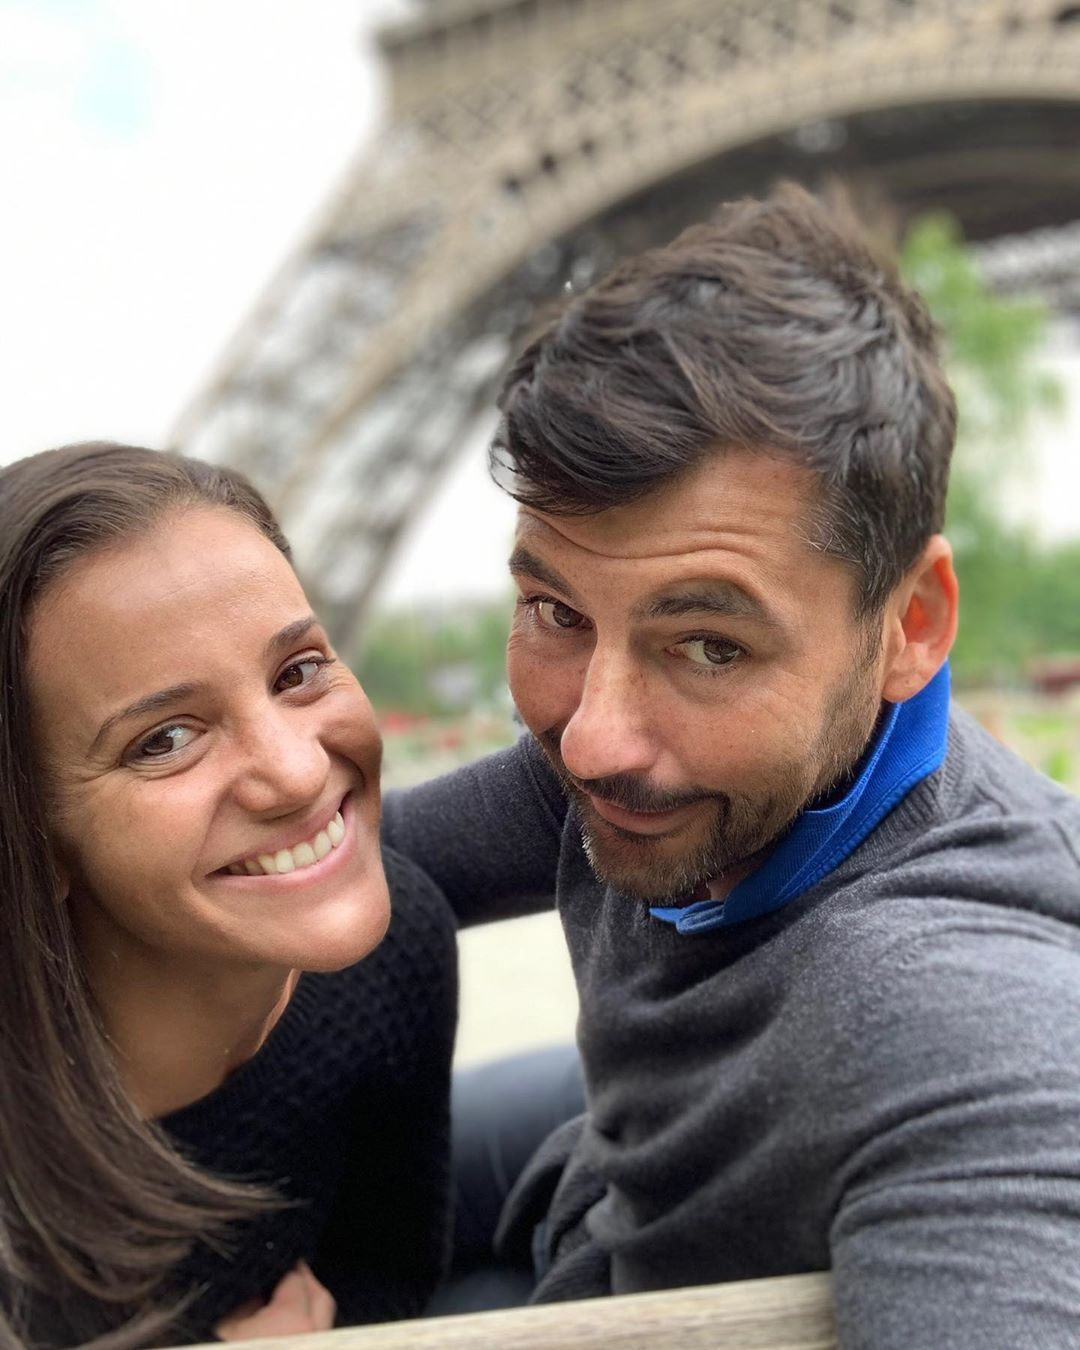 Because it's Friday and this silly man makes me heart go boom boom. . Wishing I was in Paris again or anywhere in the world exploring. . 12 days for our #austin adventure... any recommendations in Austin!? . #travel #silly #happy #smile #love #paris #explore #travelpartner #france #amor #friday #makeyourownfun #life #laugh #relationahipgoals #couplegoals #couple #instalove